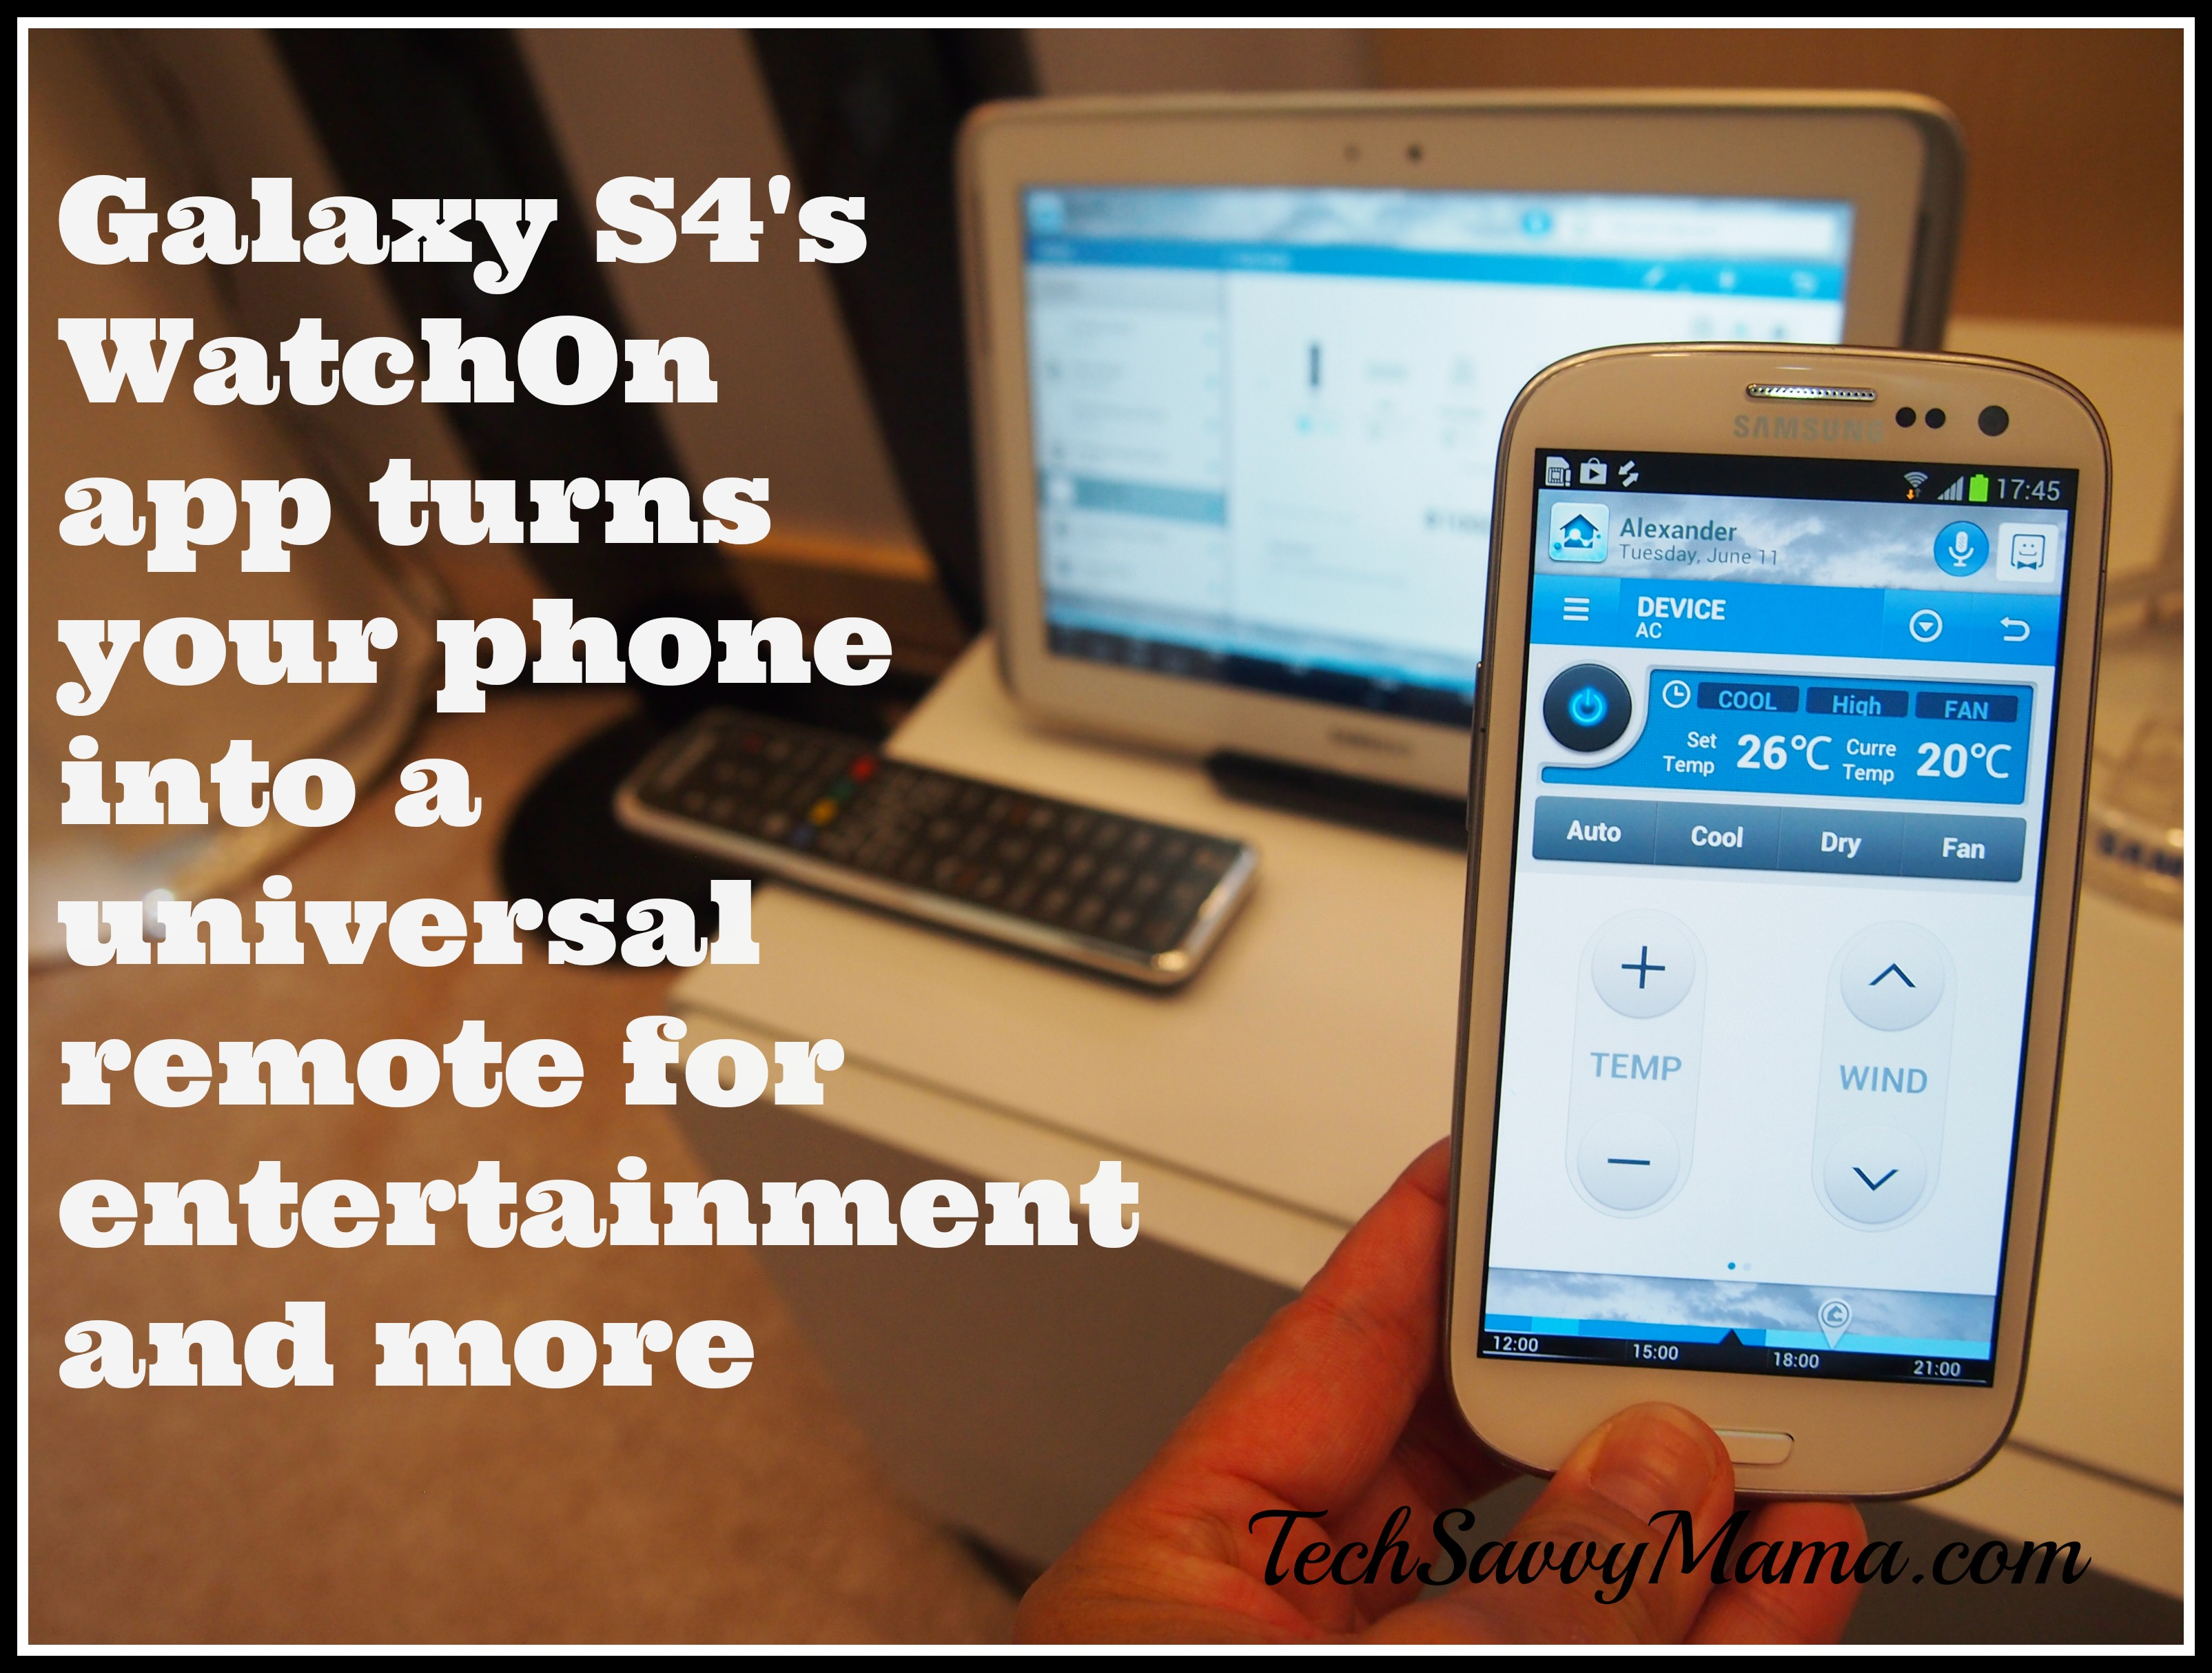 Samsung Galaxy S4 Review One Of The Best Android Devices Tempts Iphone Users To Switch Tech Savvy Mama